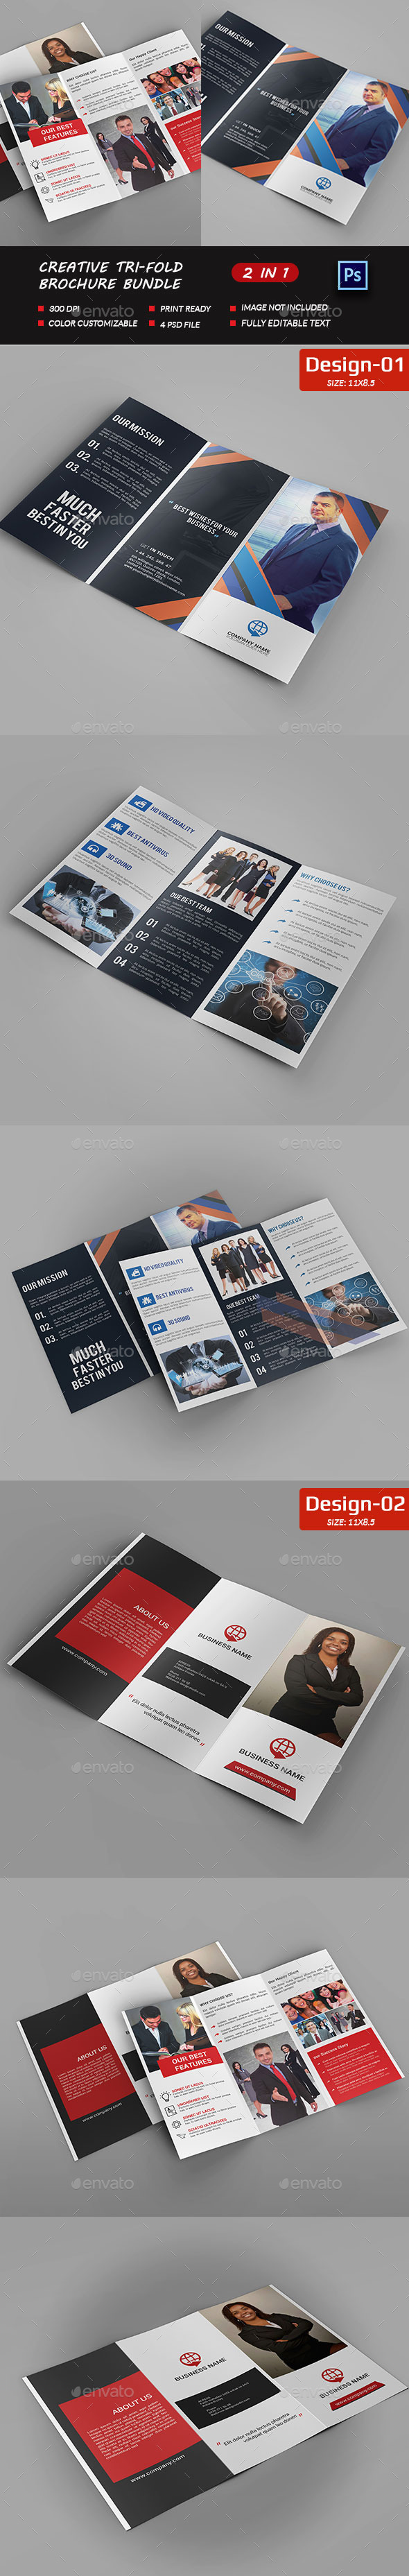 Corporate Tri-fold Brochure Bundle - Brochures Print Templates